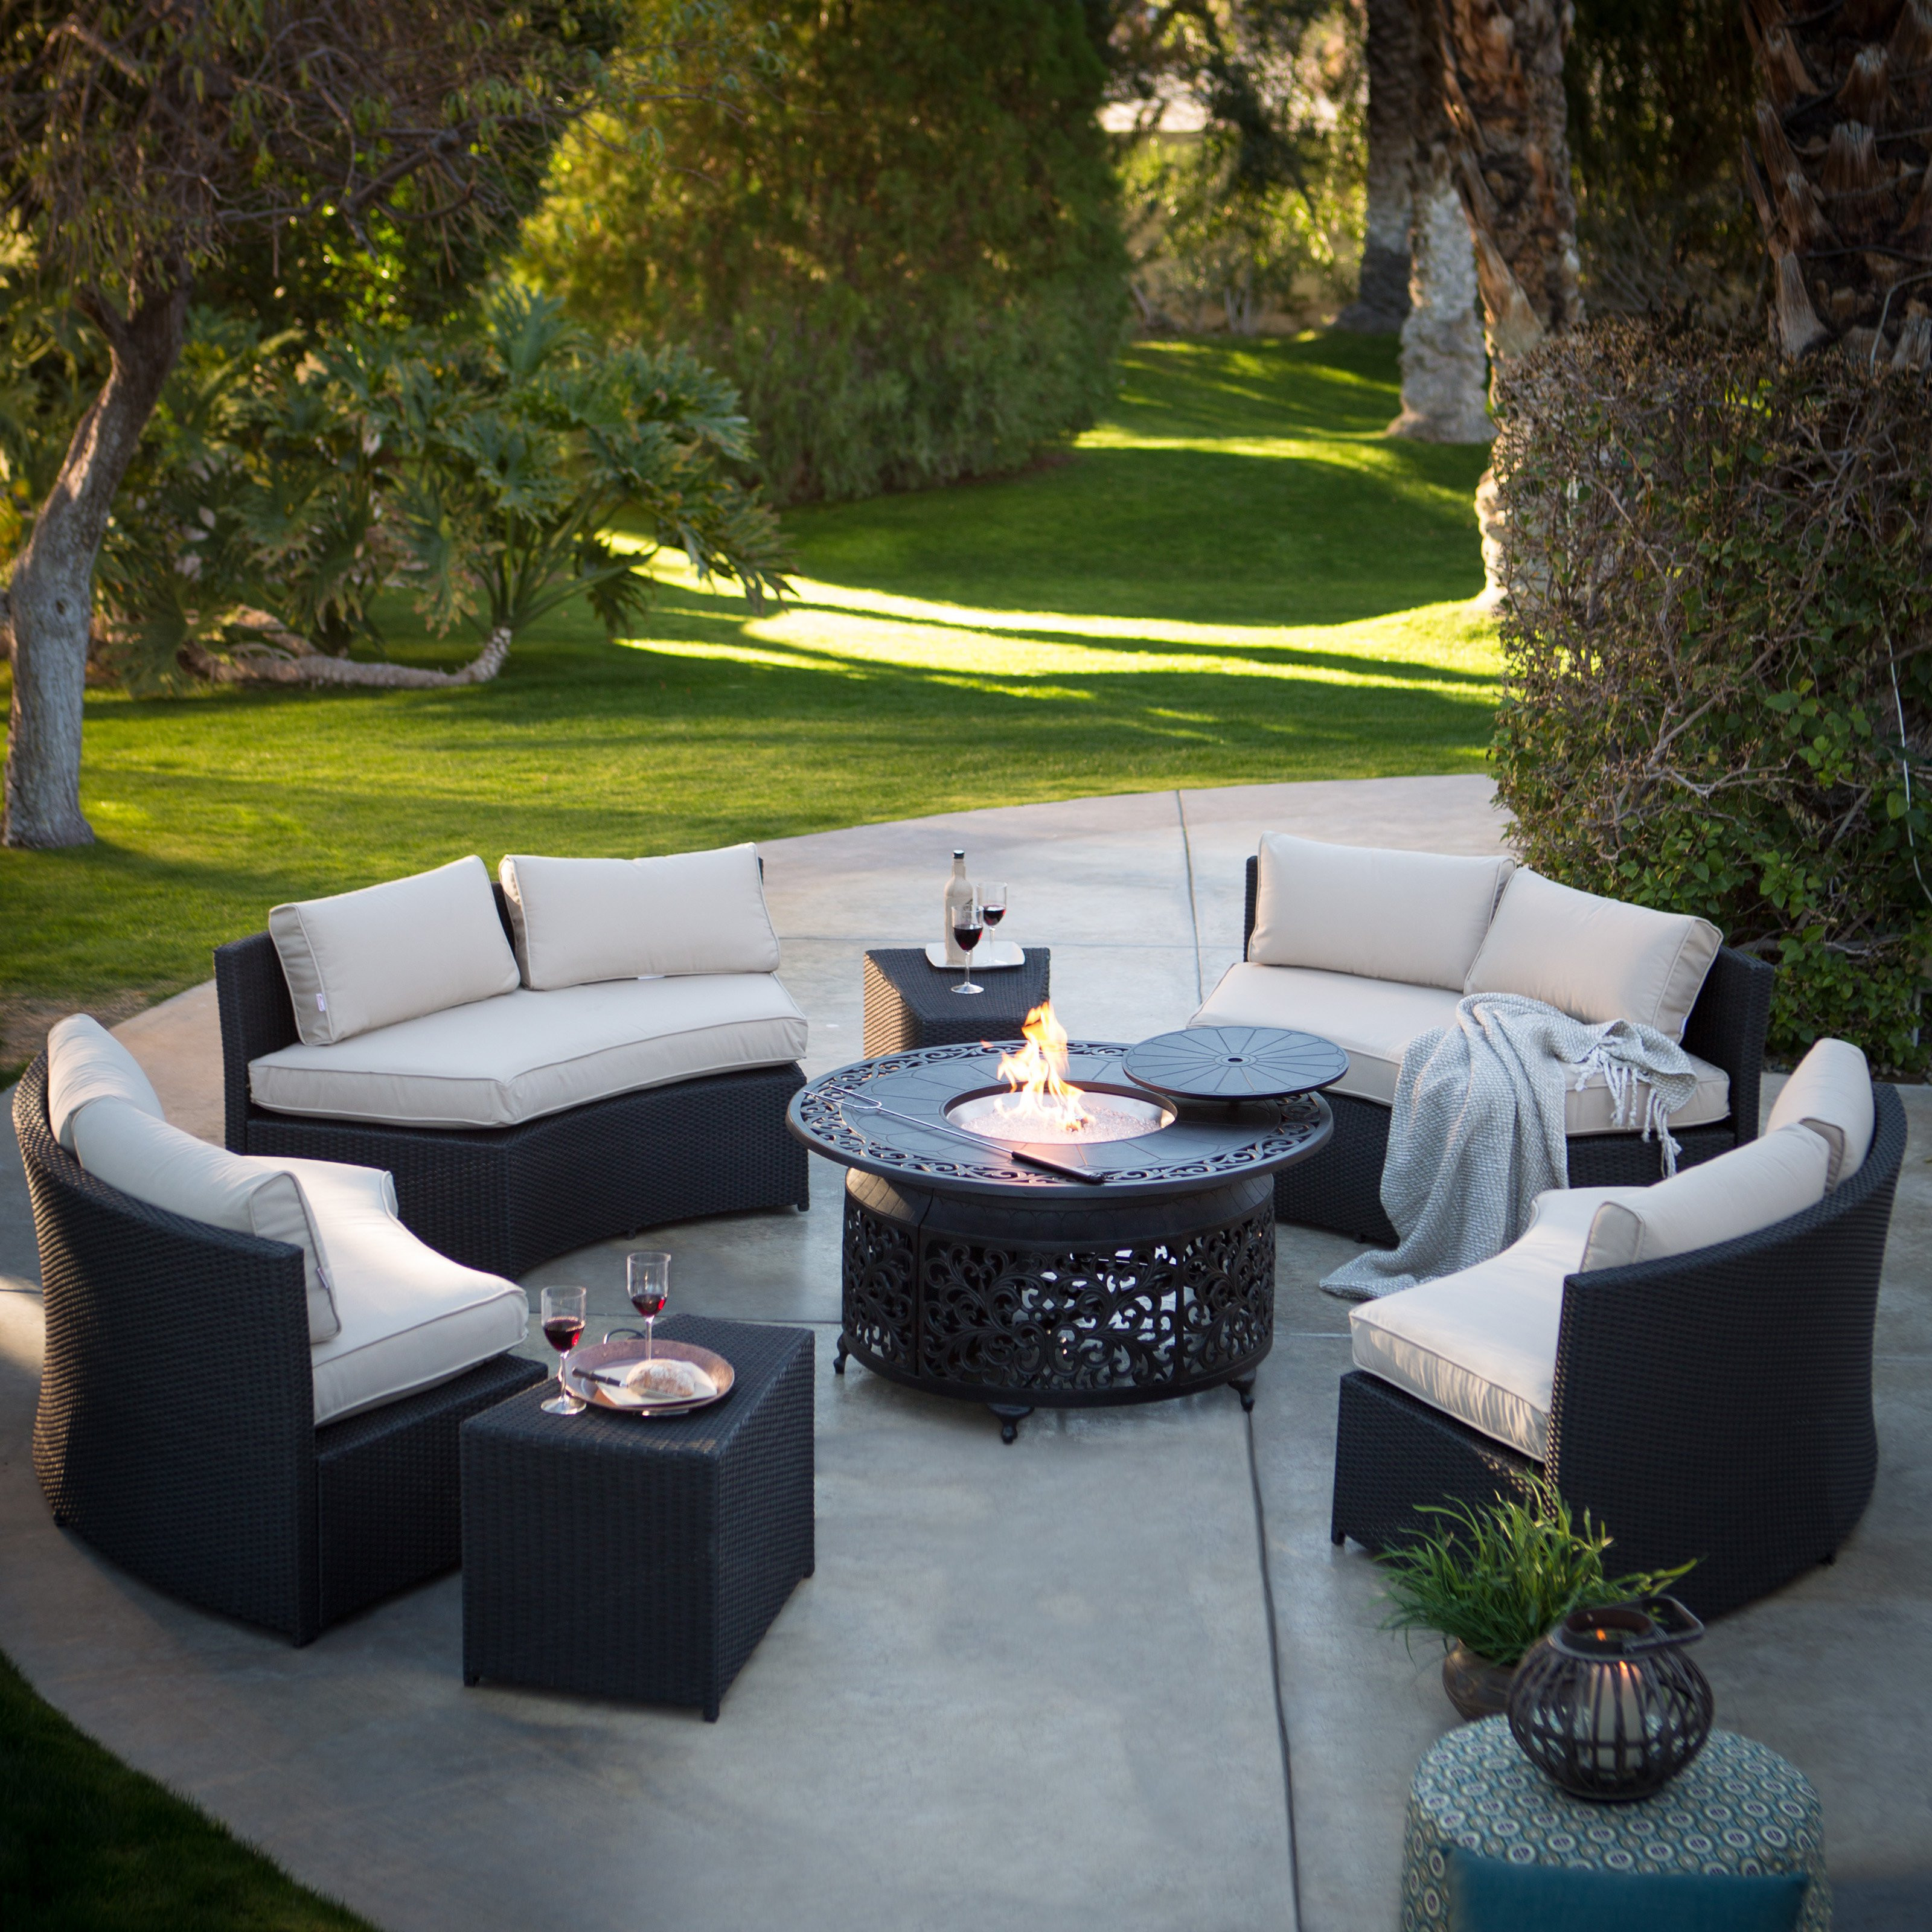 Best ideas about Outdoor Fire Pit Sets . Save or Pin Belham Living Meridian Fire Pit Chat Set Fire Pit Patio Now.